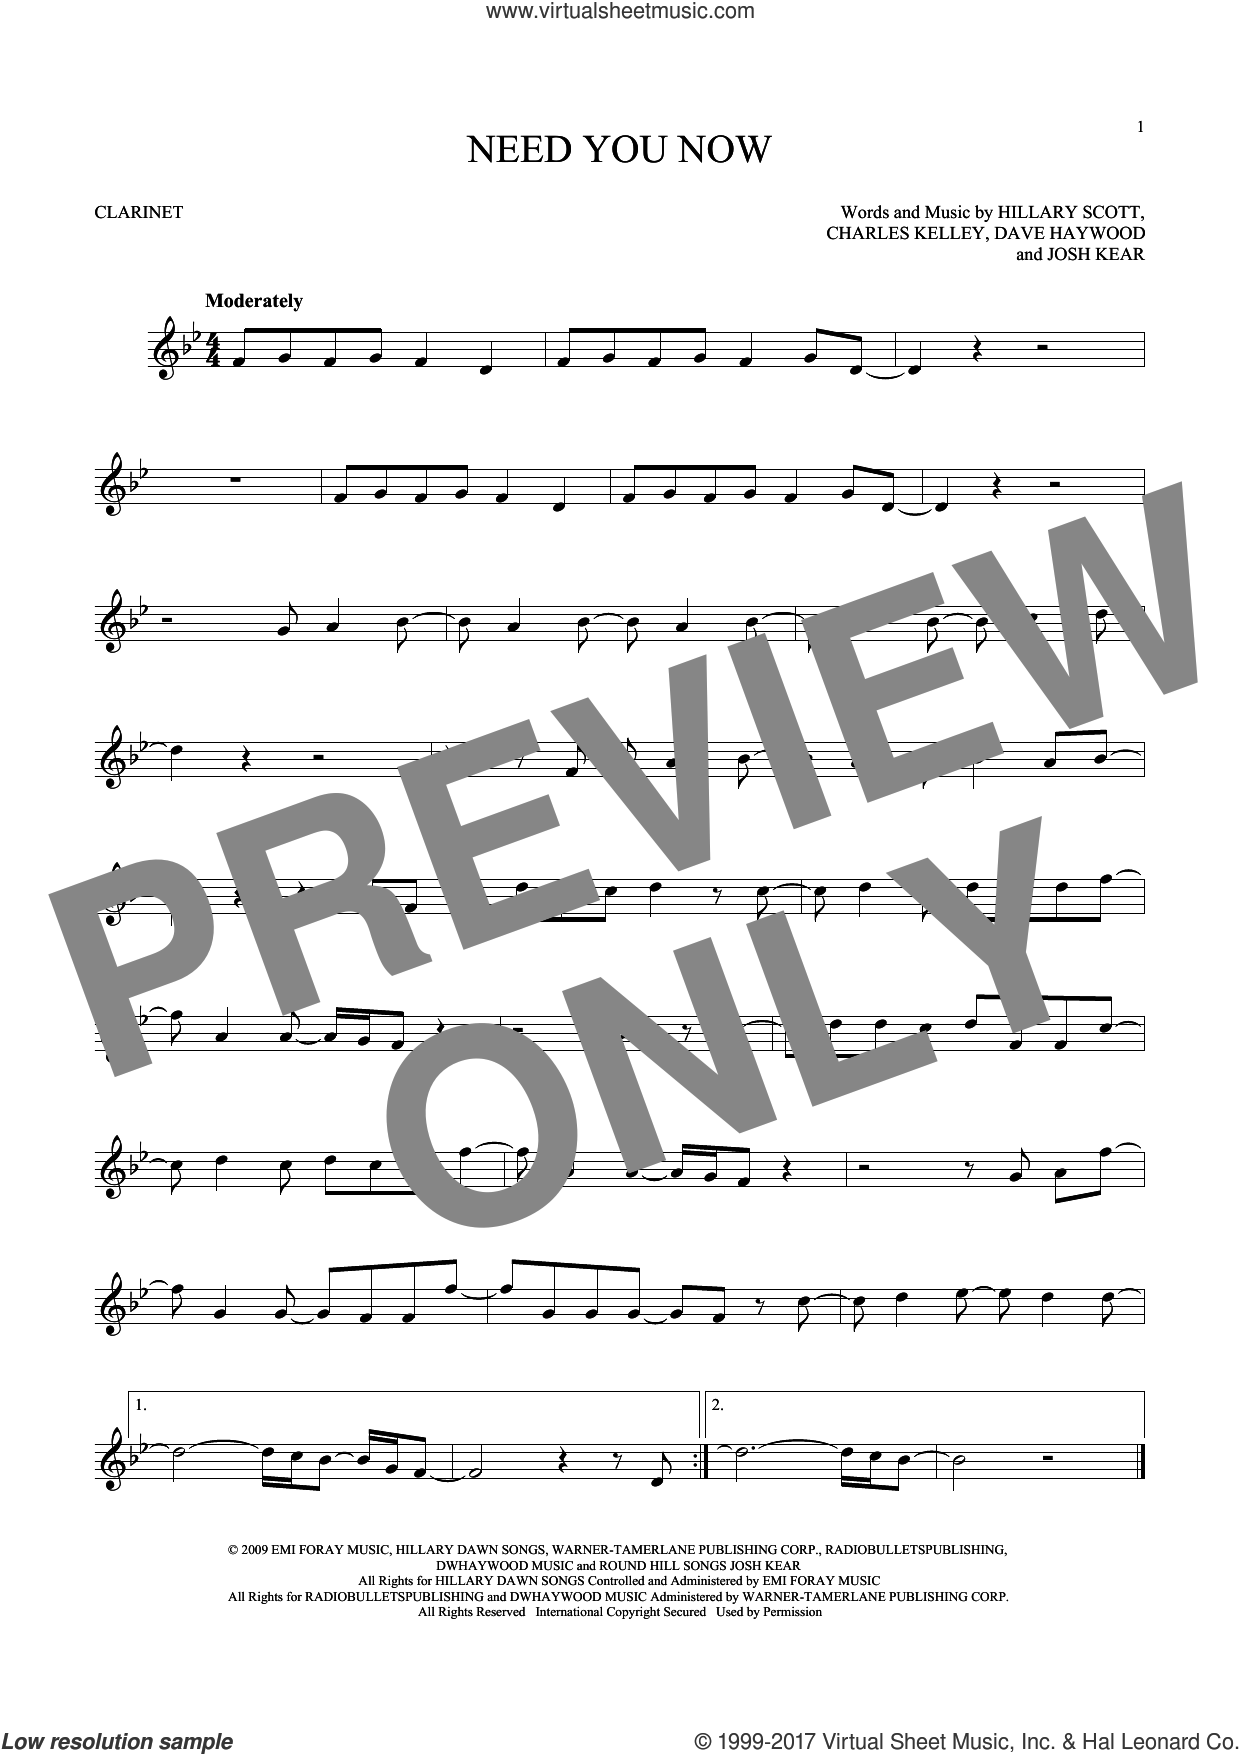 Need You Now sheet music for clarinet solo by Lady Antebellum, Charles Kelley, Dave Haywood, Hillary Scott and Josh Kear, intermediate skill level